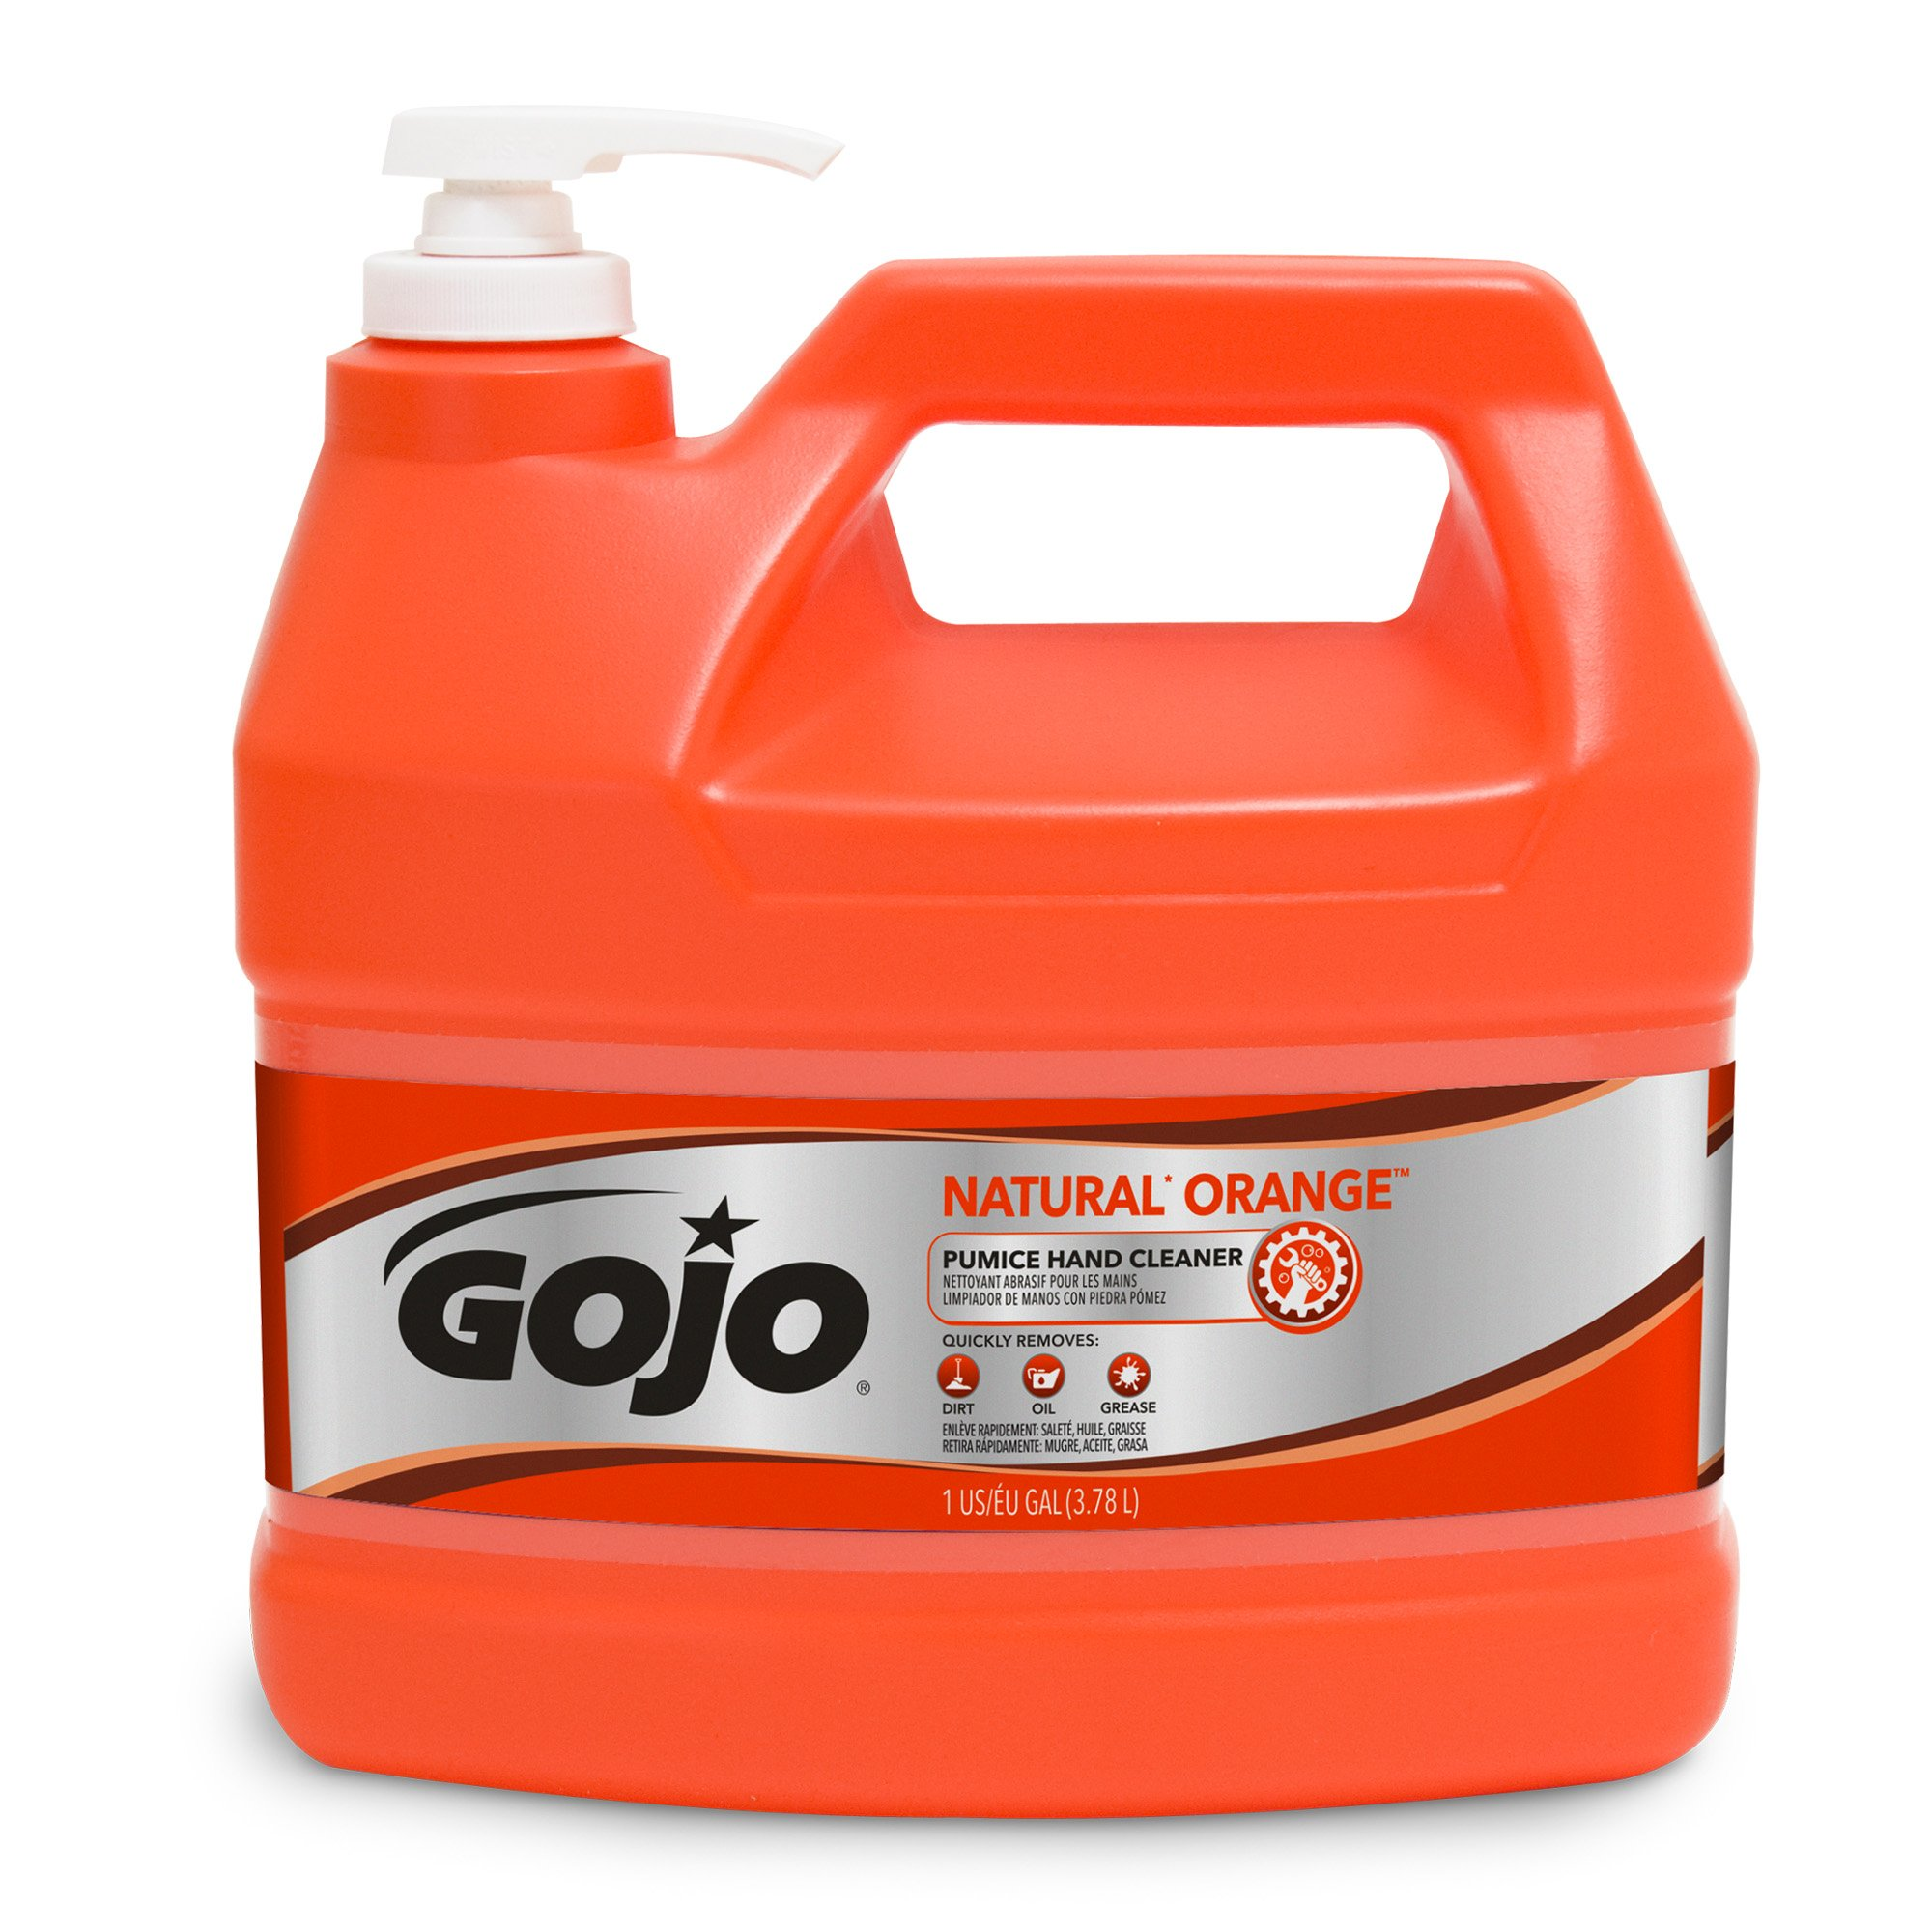 GOJO NATURAL ORANGE Pumice Industrial Hand Cleaner, 1 Gallon Quick Acting Lotion Hand Cleaner with Pumice Pump Bottle - 0955-04 by Gojo